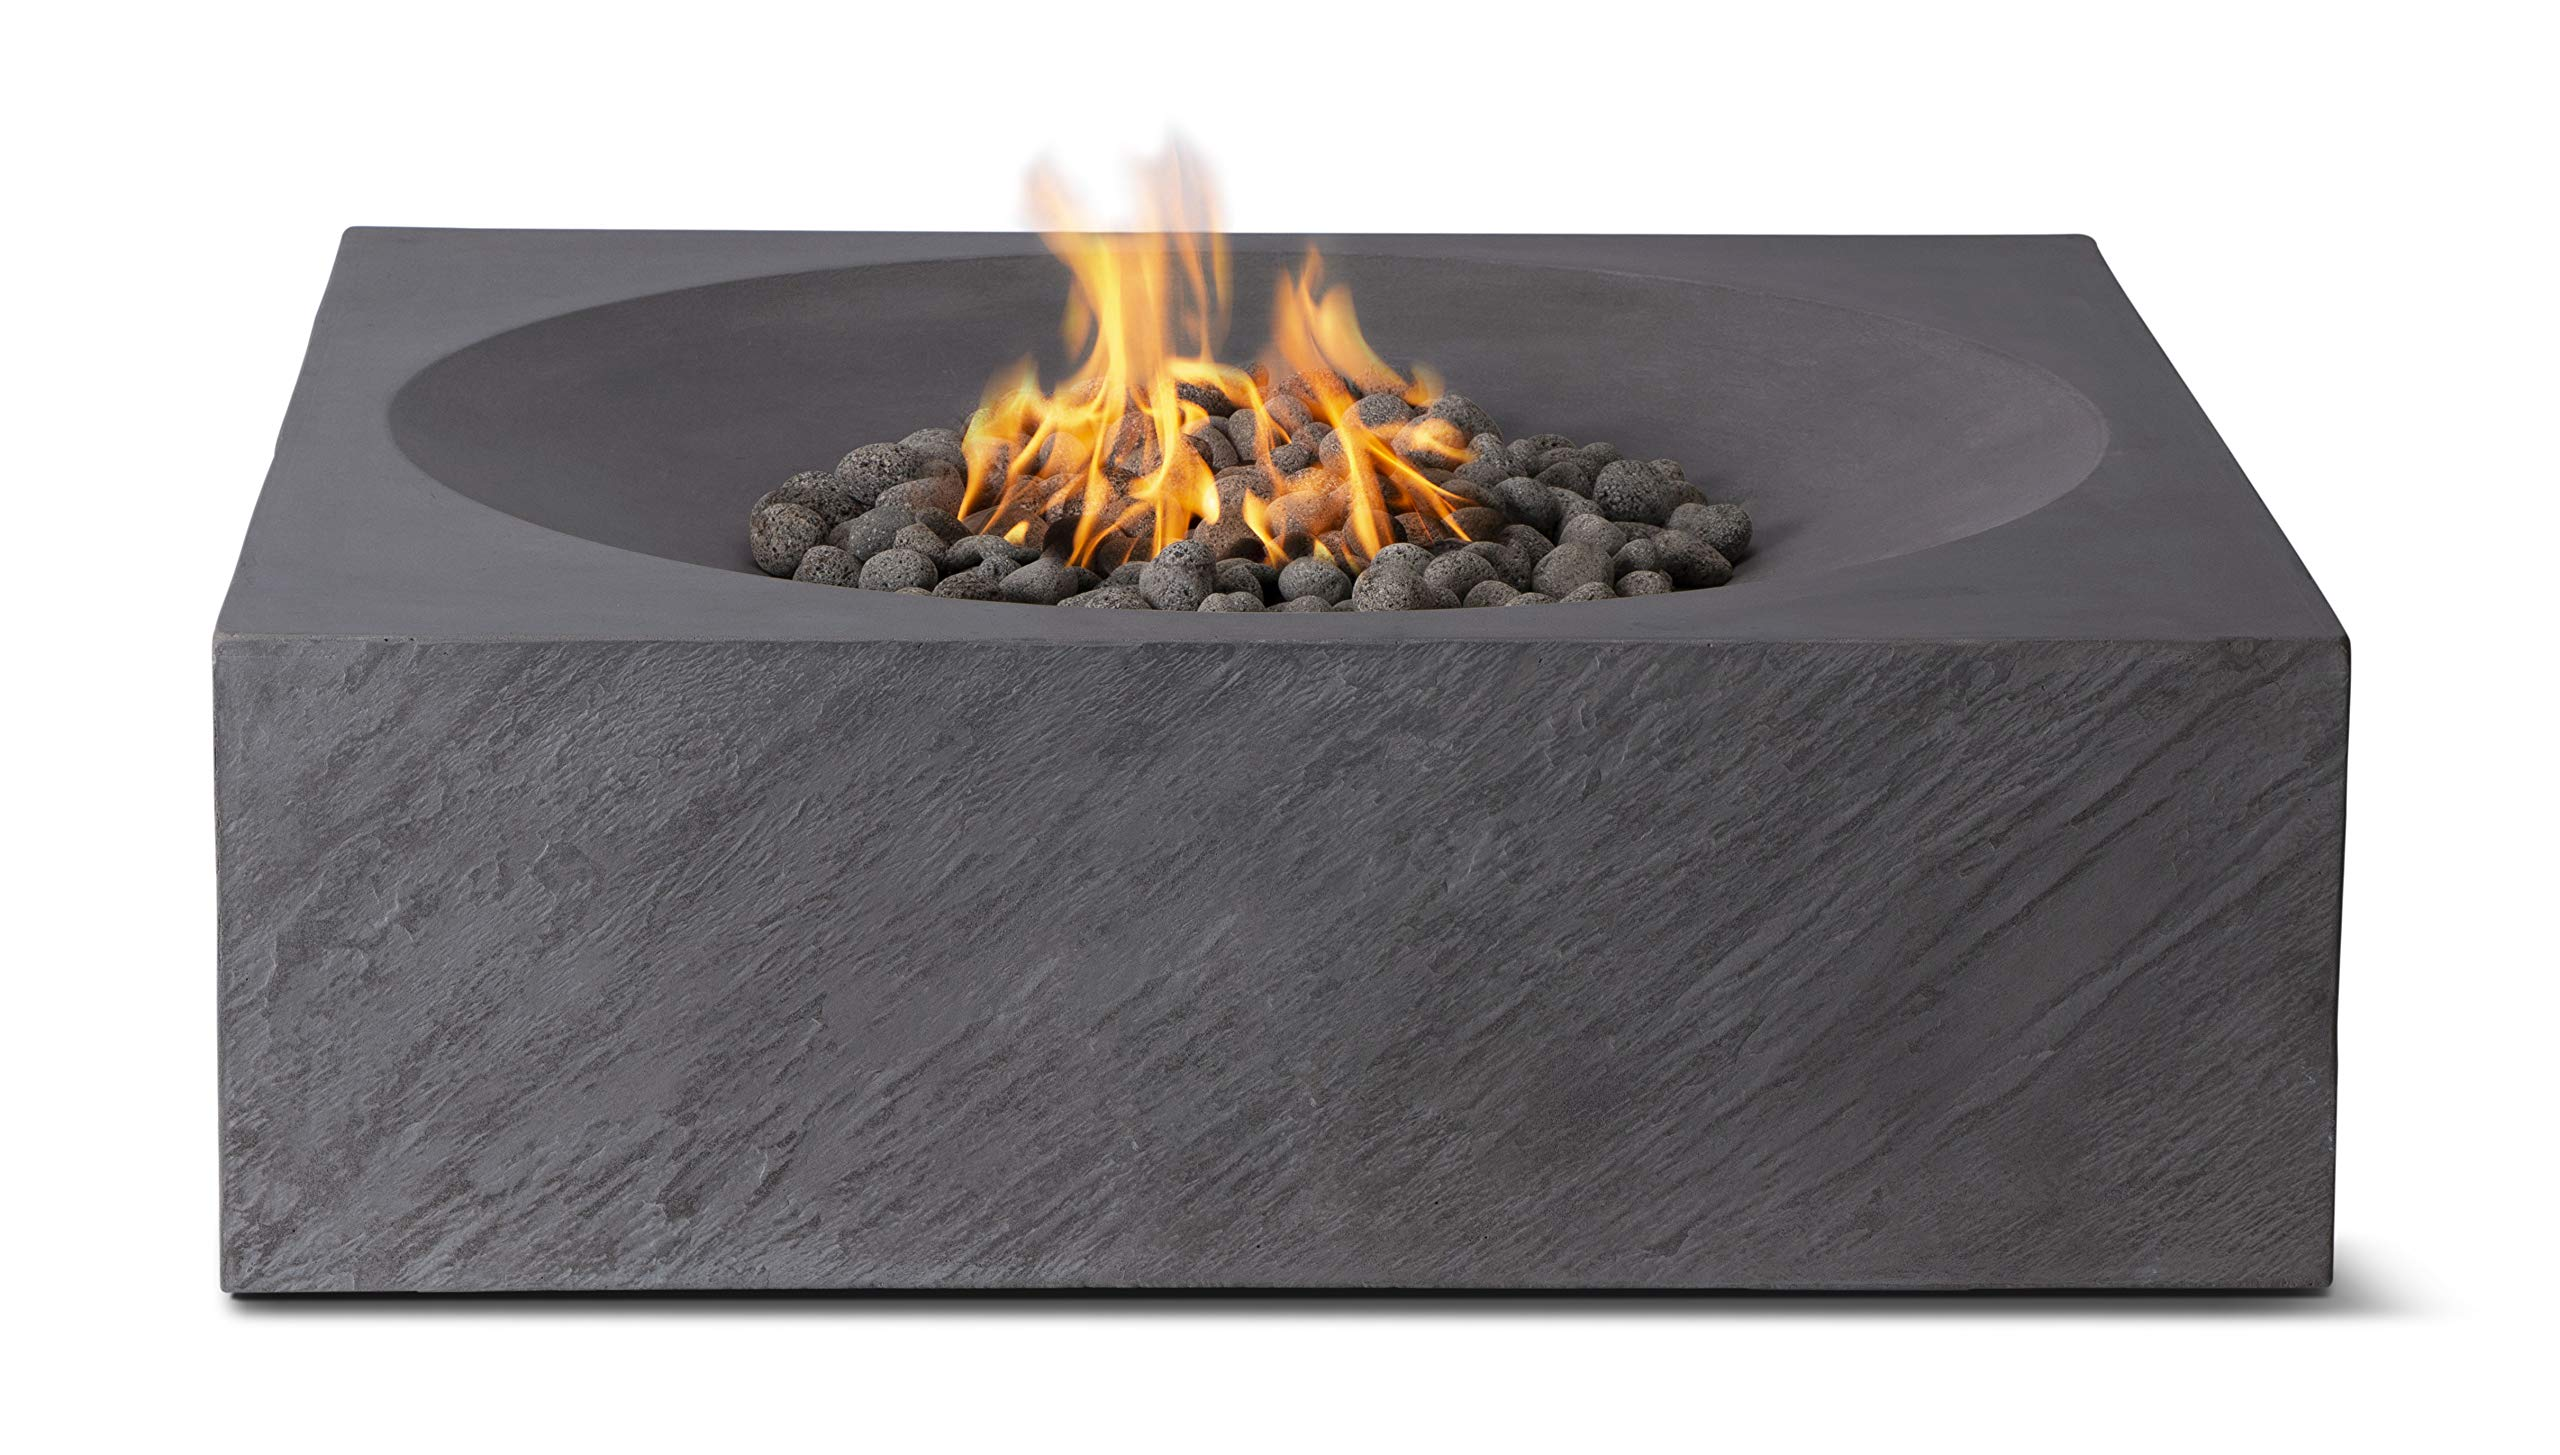 Pyromania Paloma Outdoor Fire Pit Table. Hand Crafted from Concrete. 60,000 BTU Stainless Steel Burner with Electronic Ignition - Natural Gas Model, Charcoal Color (Lava Rock Included)